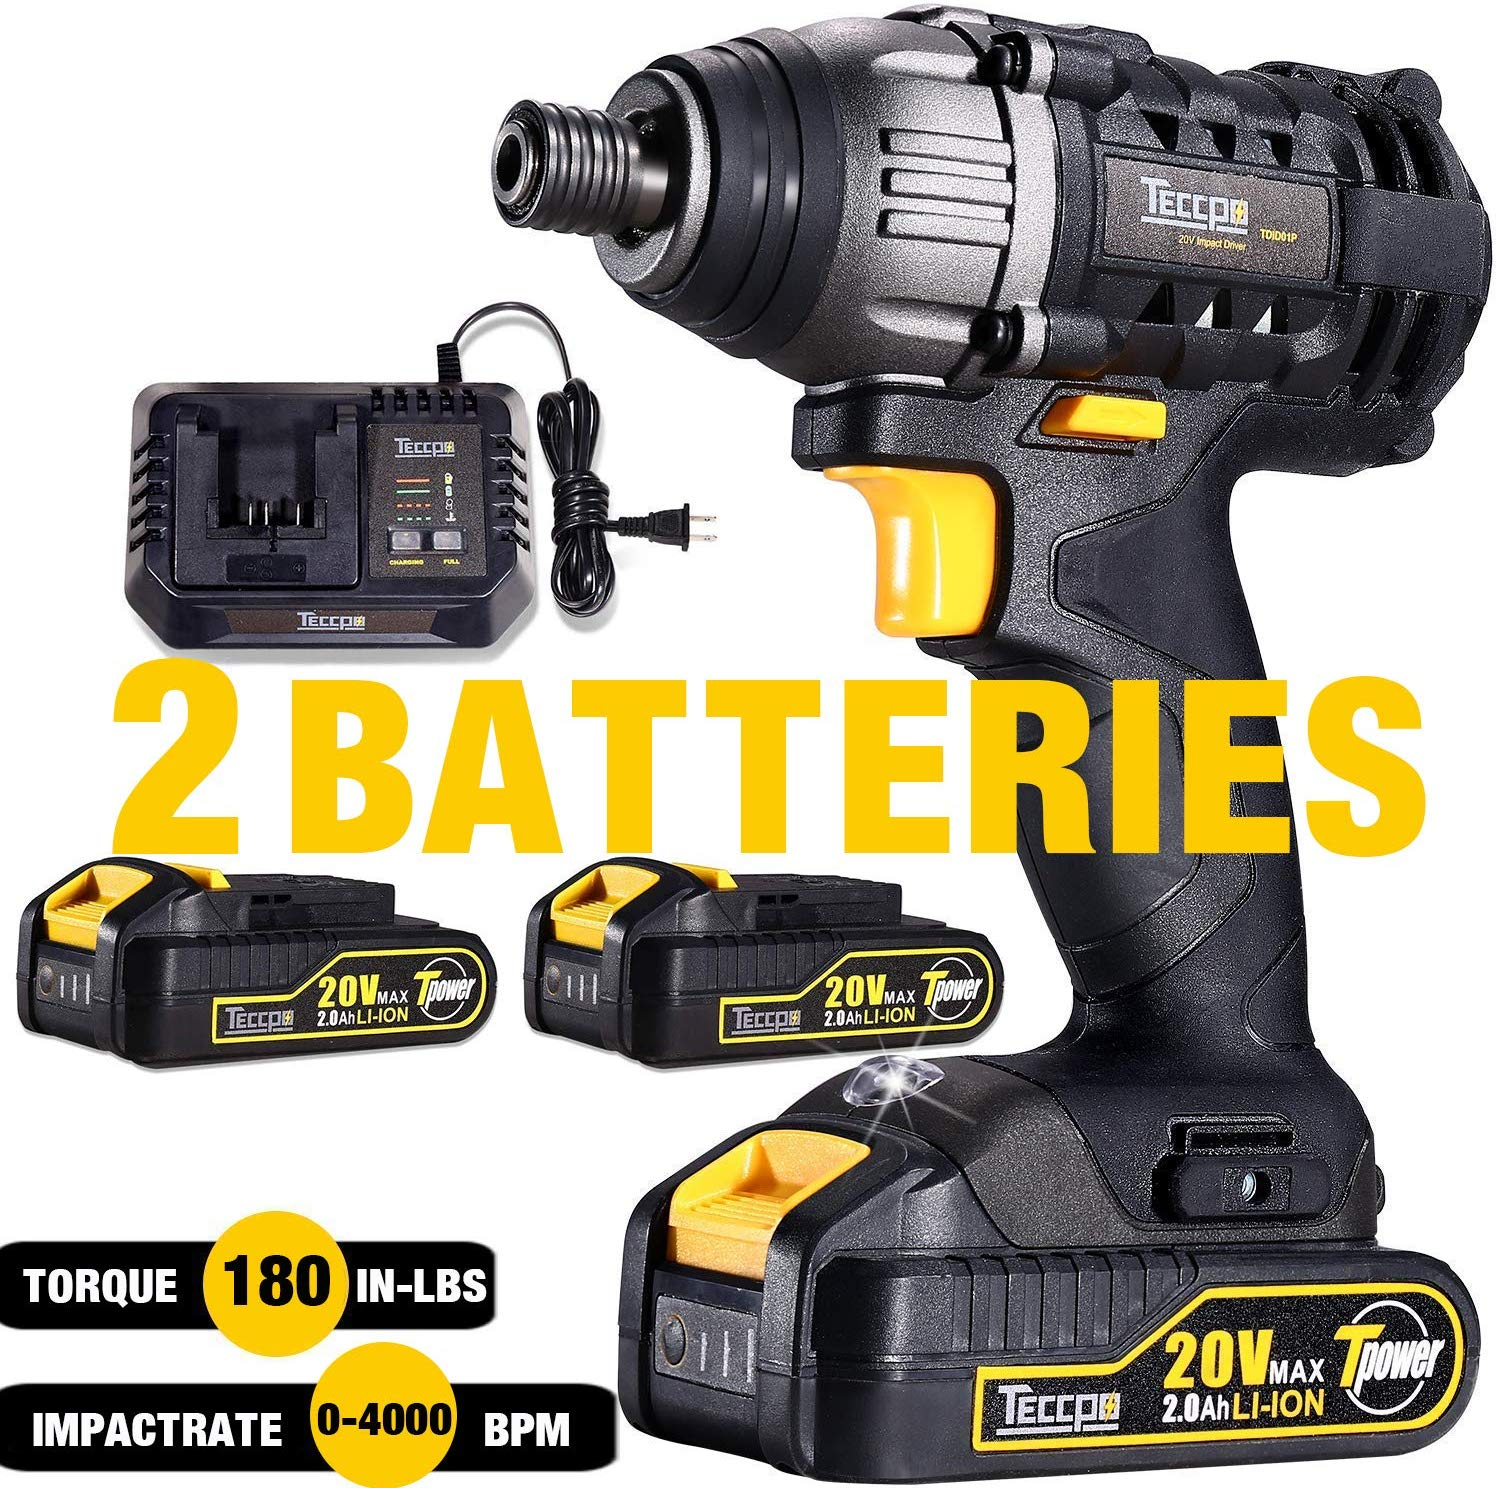 TECCPO Impact Driver Brushless 18V, 2 Batteries 2.0Ah for £67.99 on Amazon